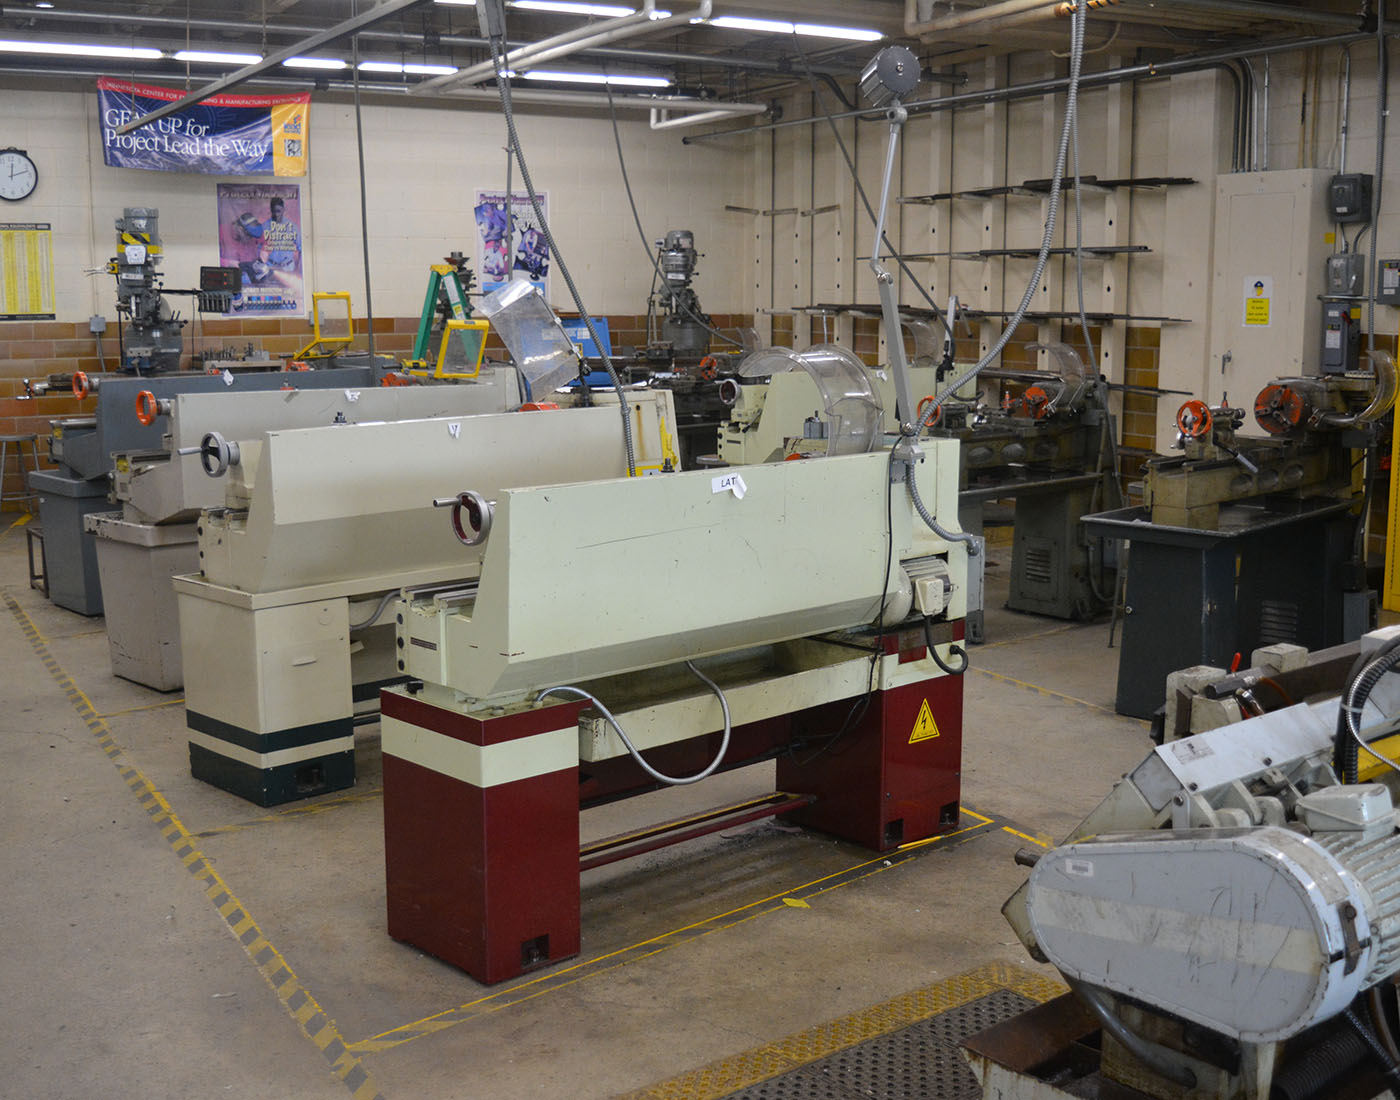 The Lathes, a machine that is used to help trim and cuts materials.